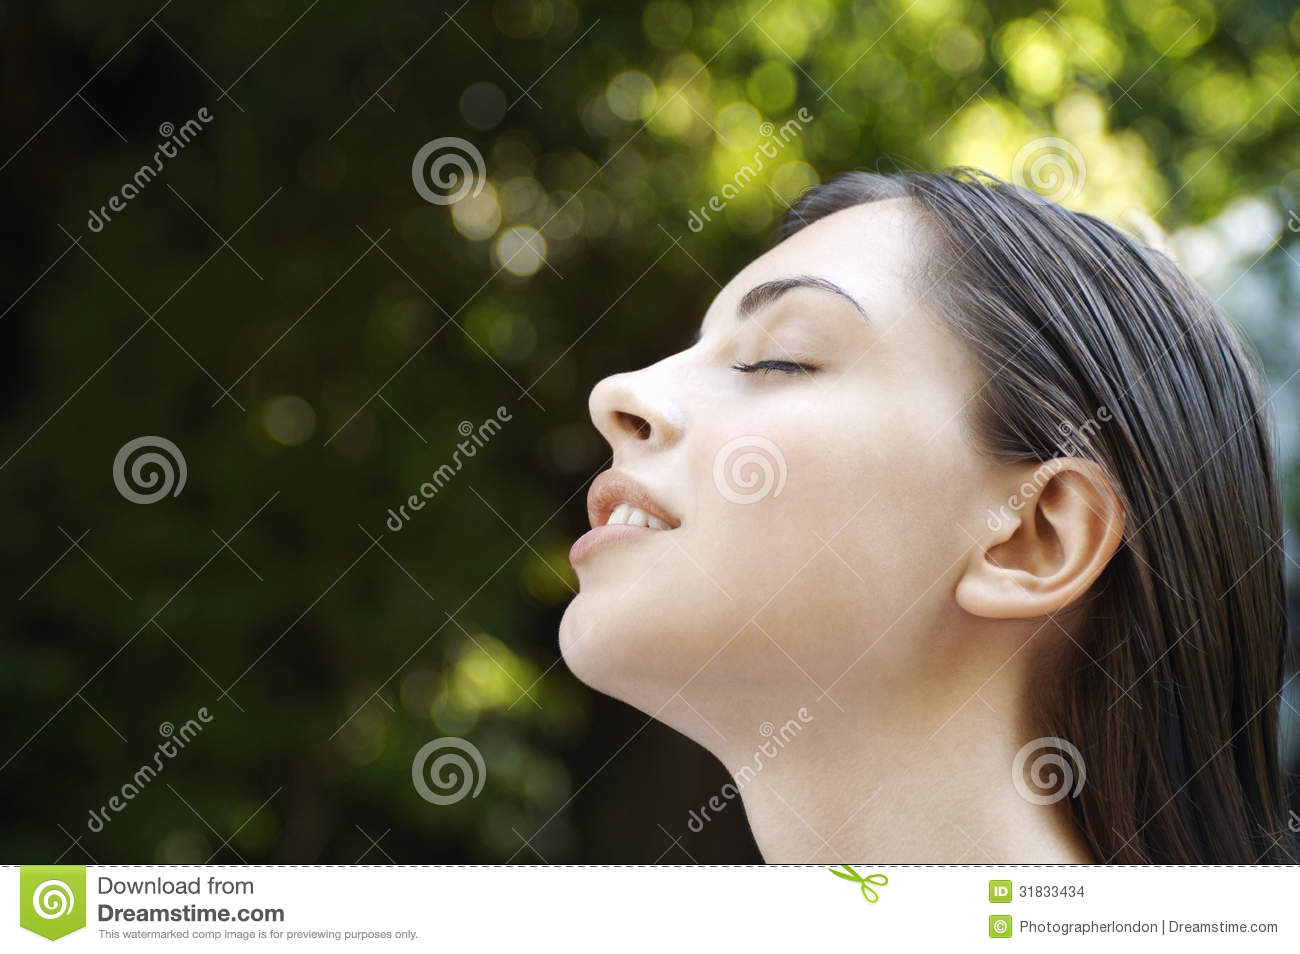 Woman With Eyes Closed In Park Stock Images - Image: 31833434